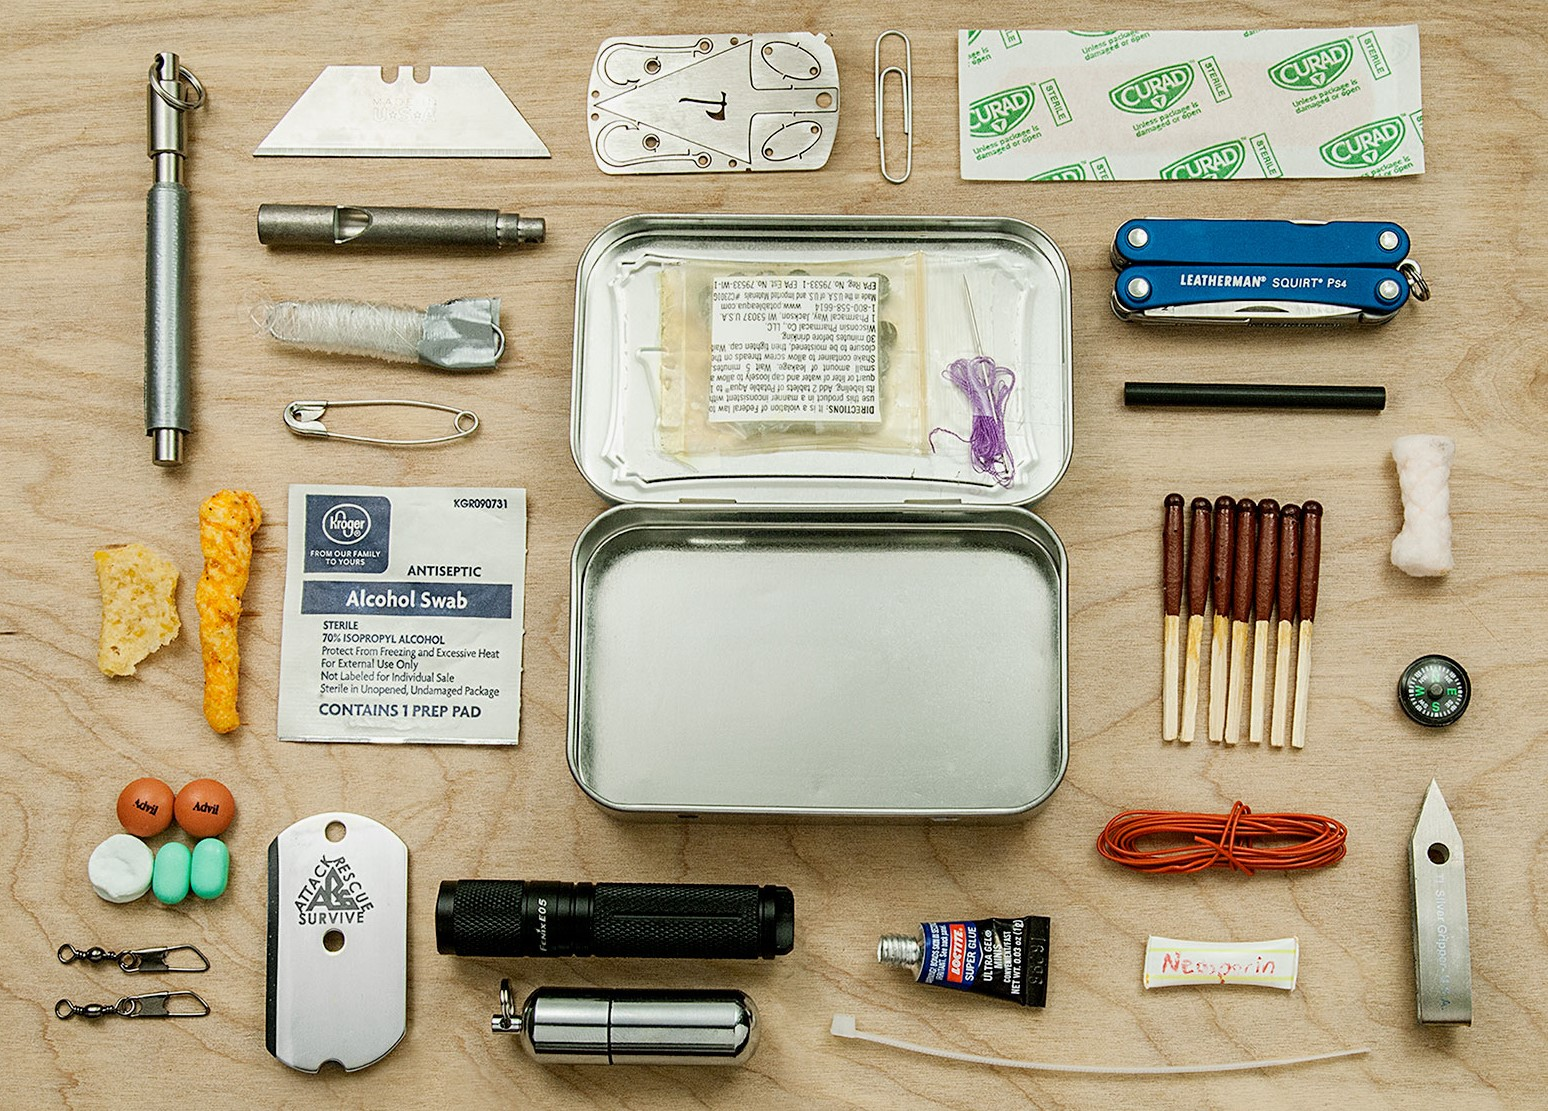 Exploded Altoids Survival Tin